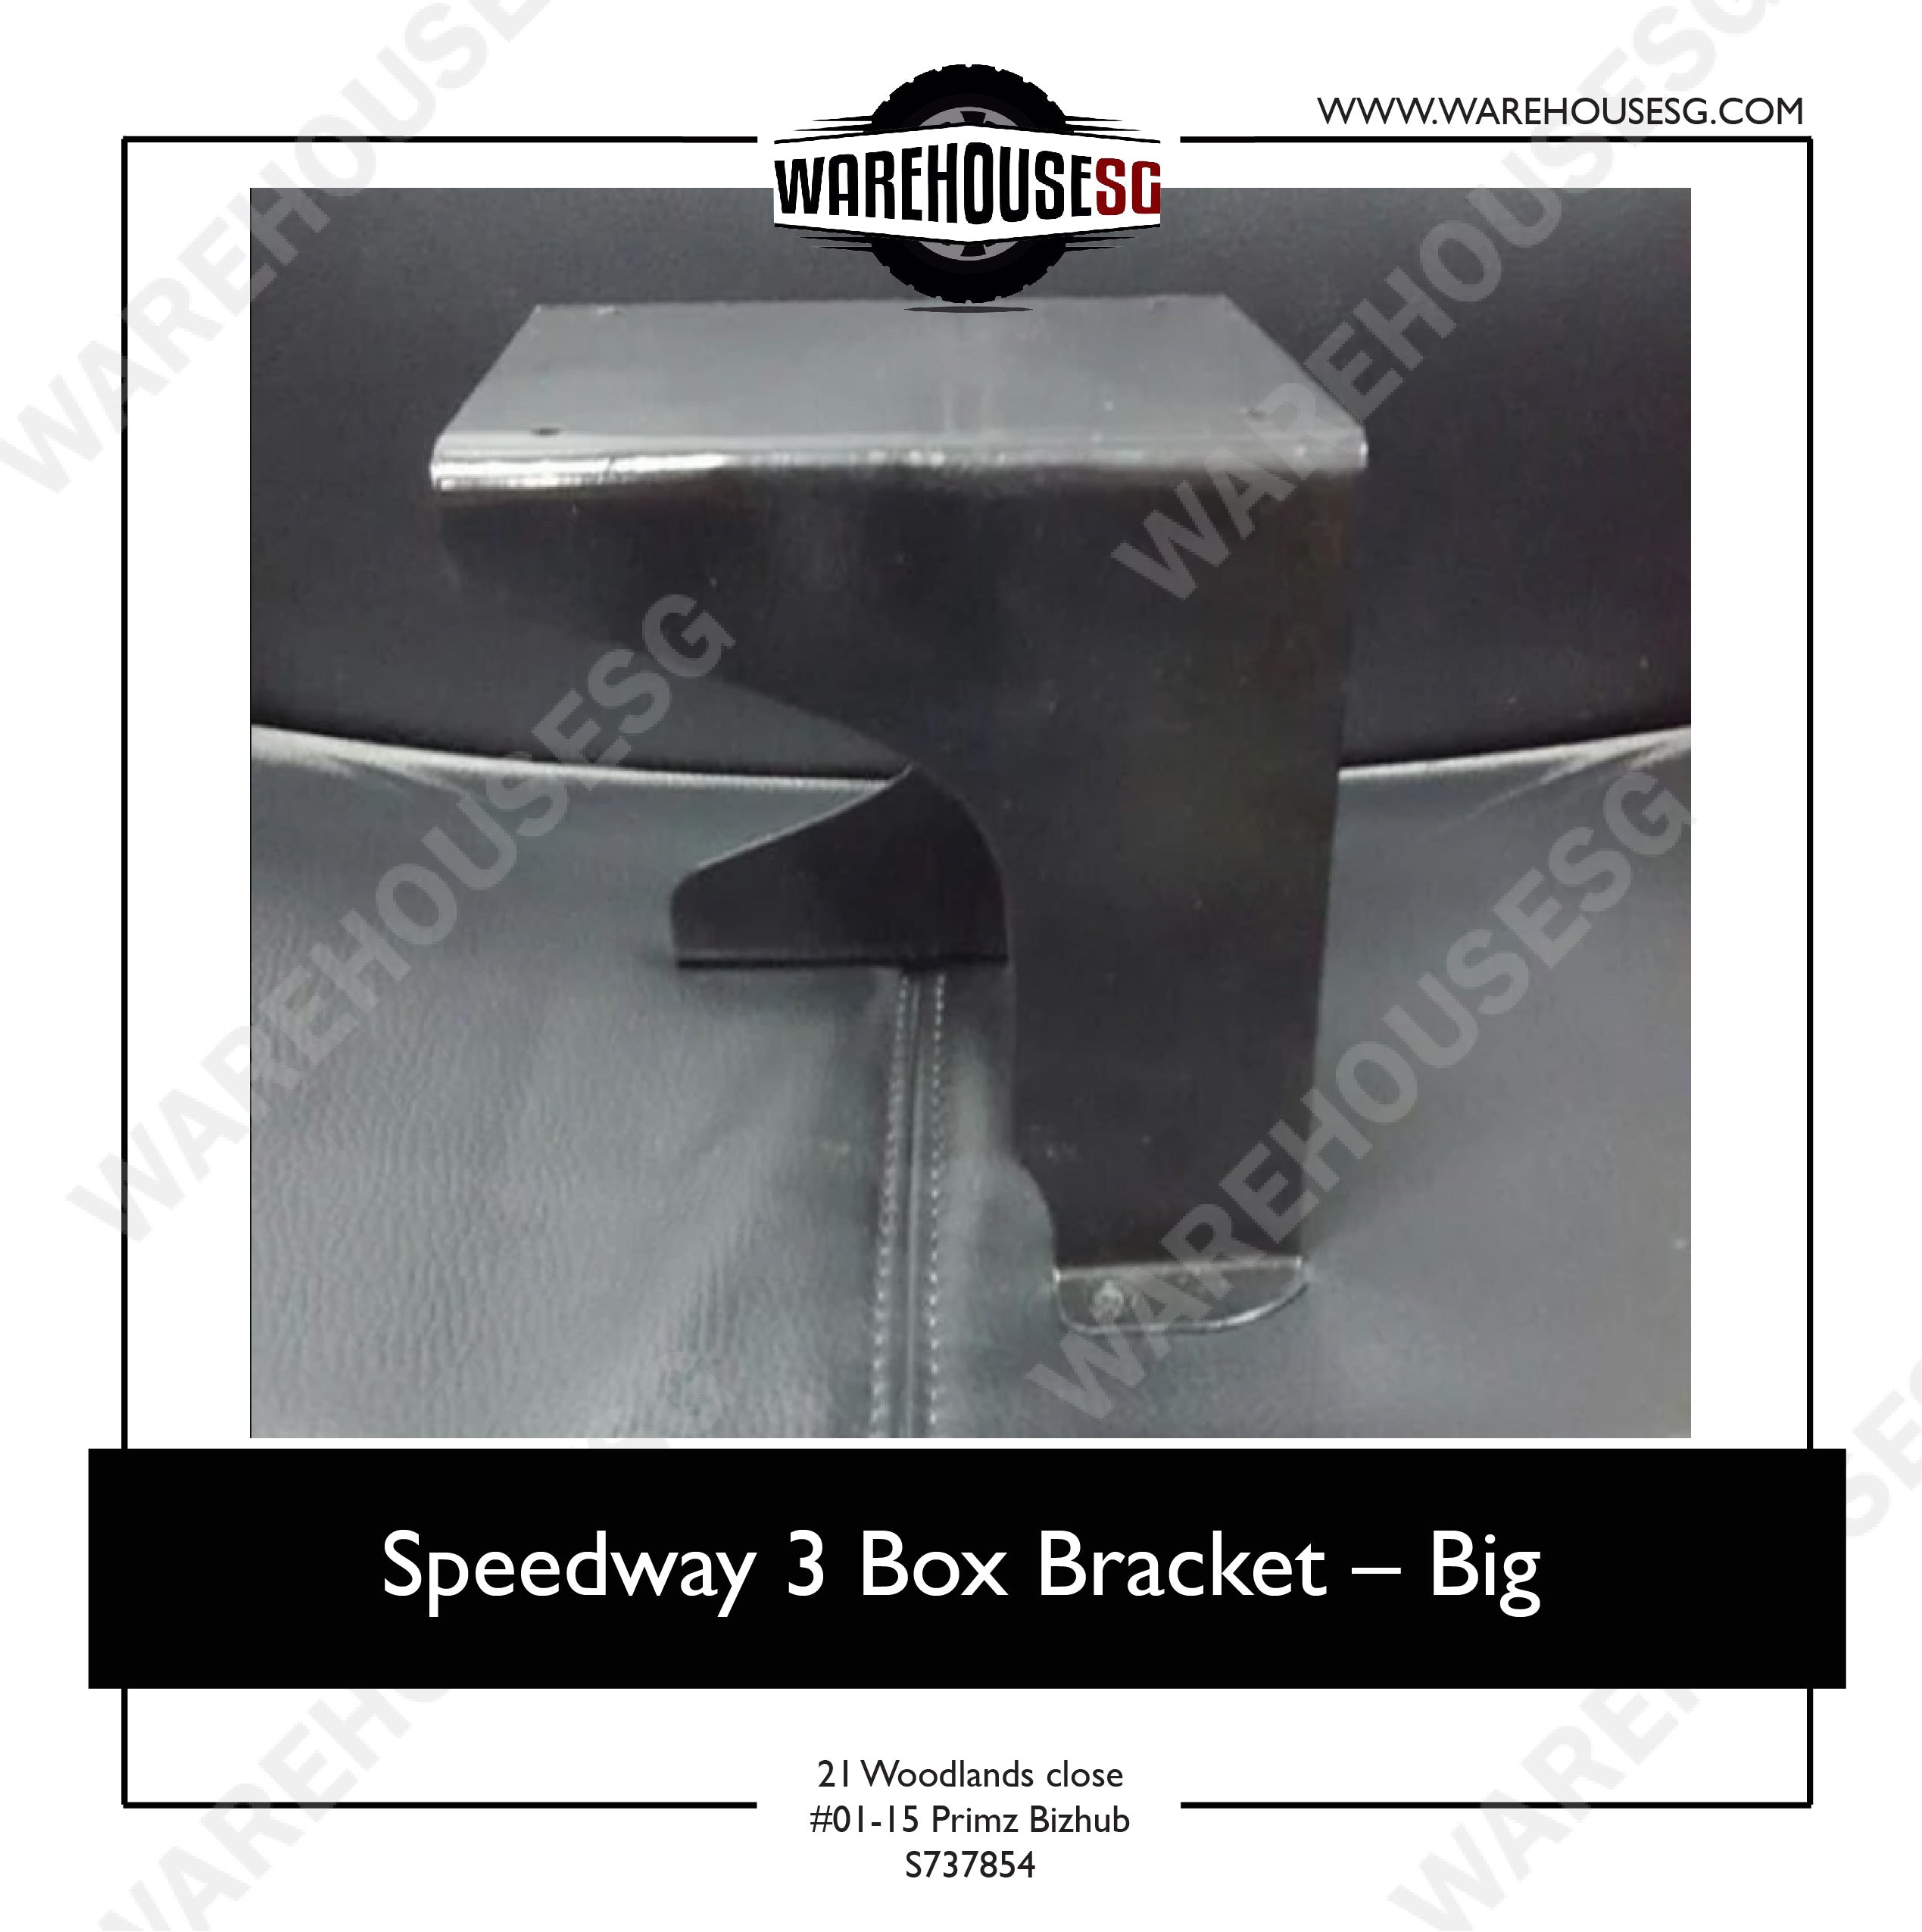 Speedway 3 Box Bracket - Big